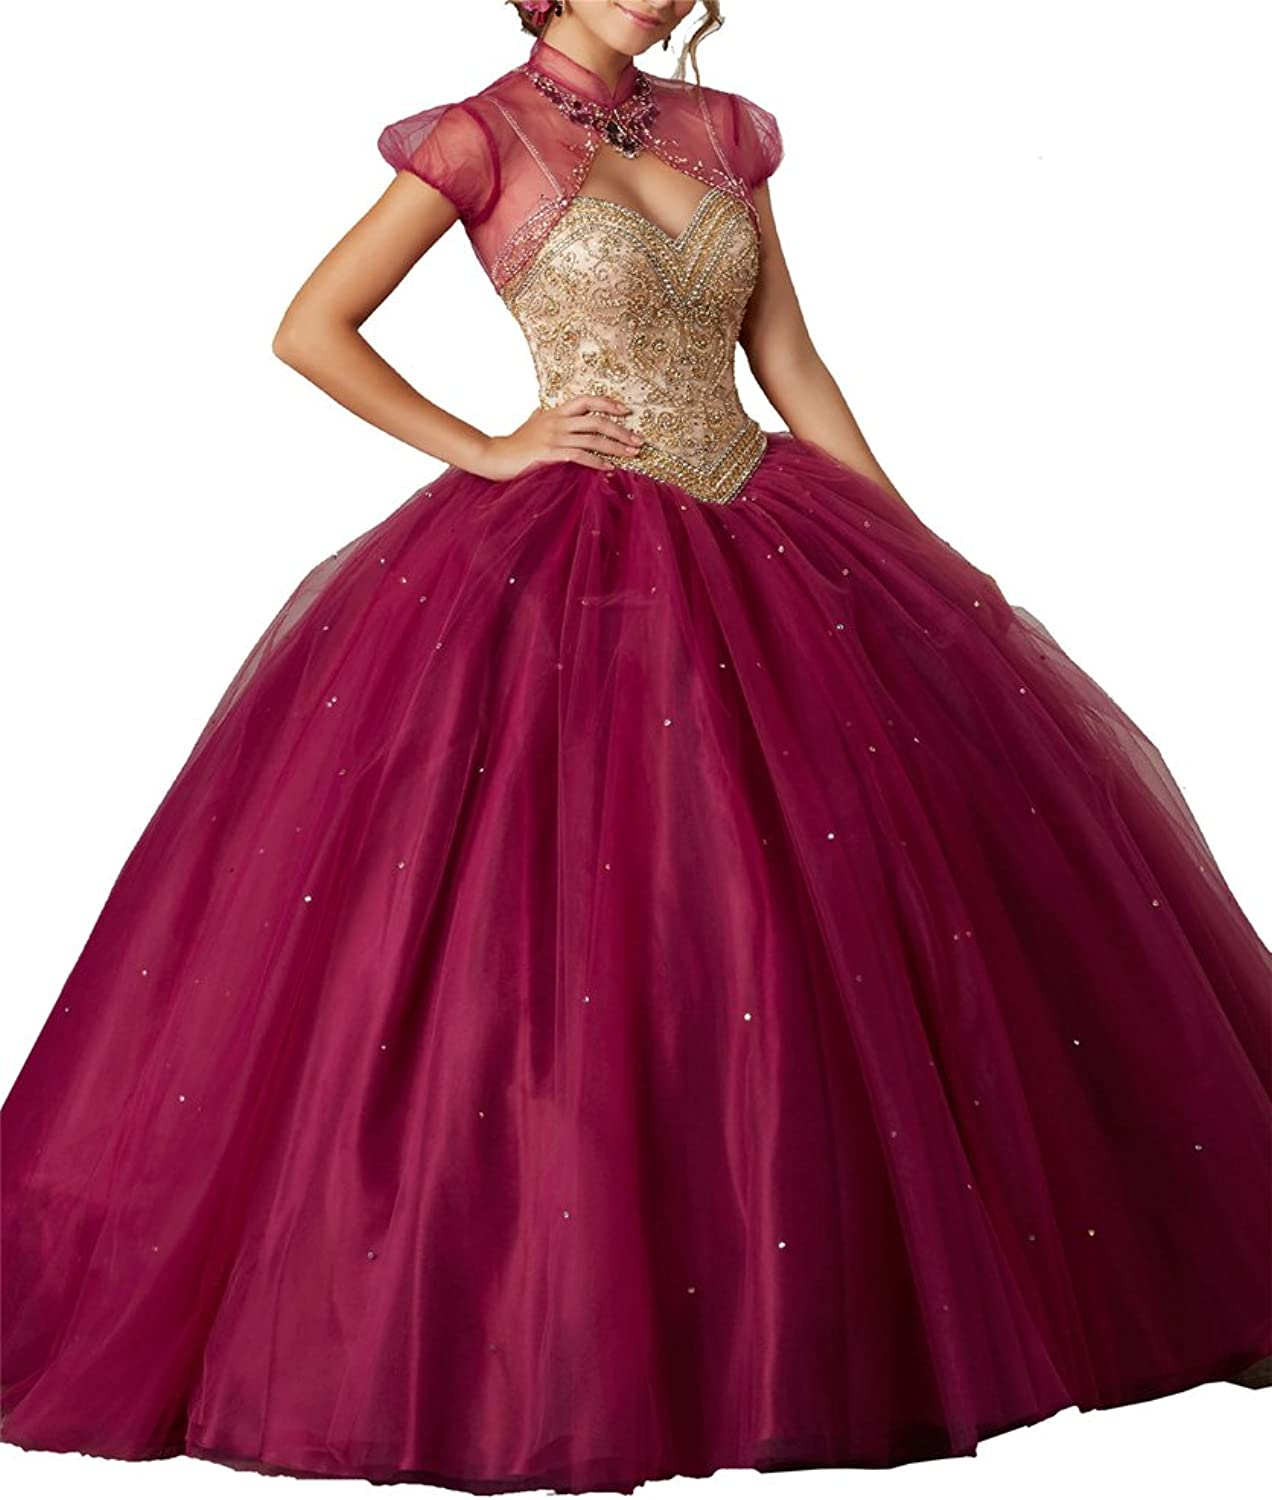 Yang Women Spaghetti Beaded Free Jacket Sequins Pageant Sweet Girls Quinceanera Dresses